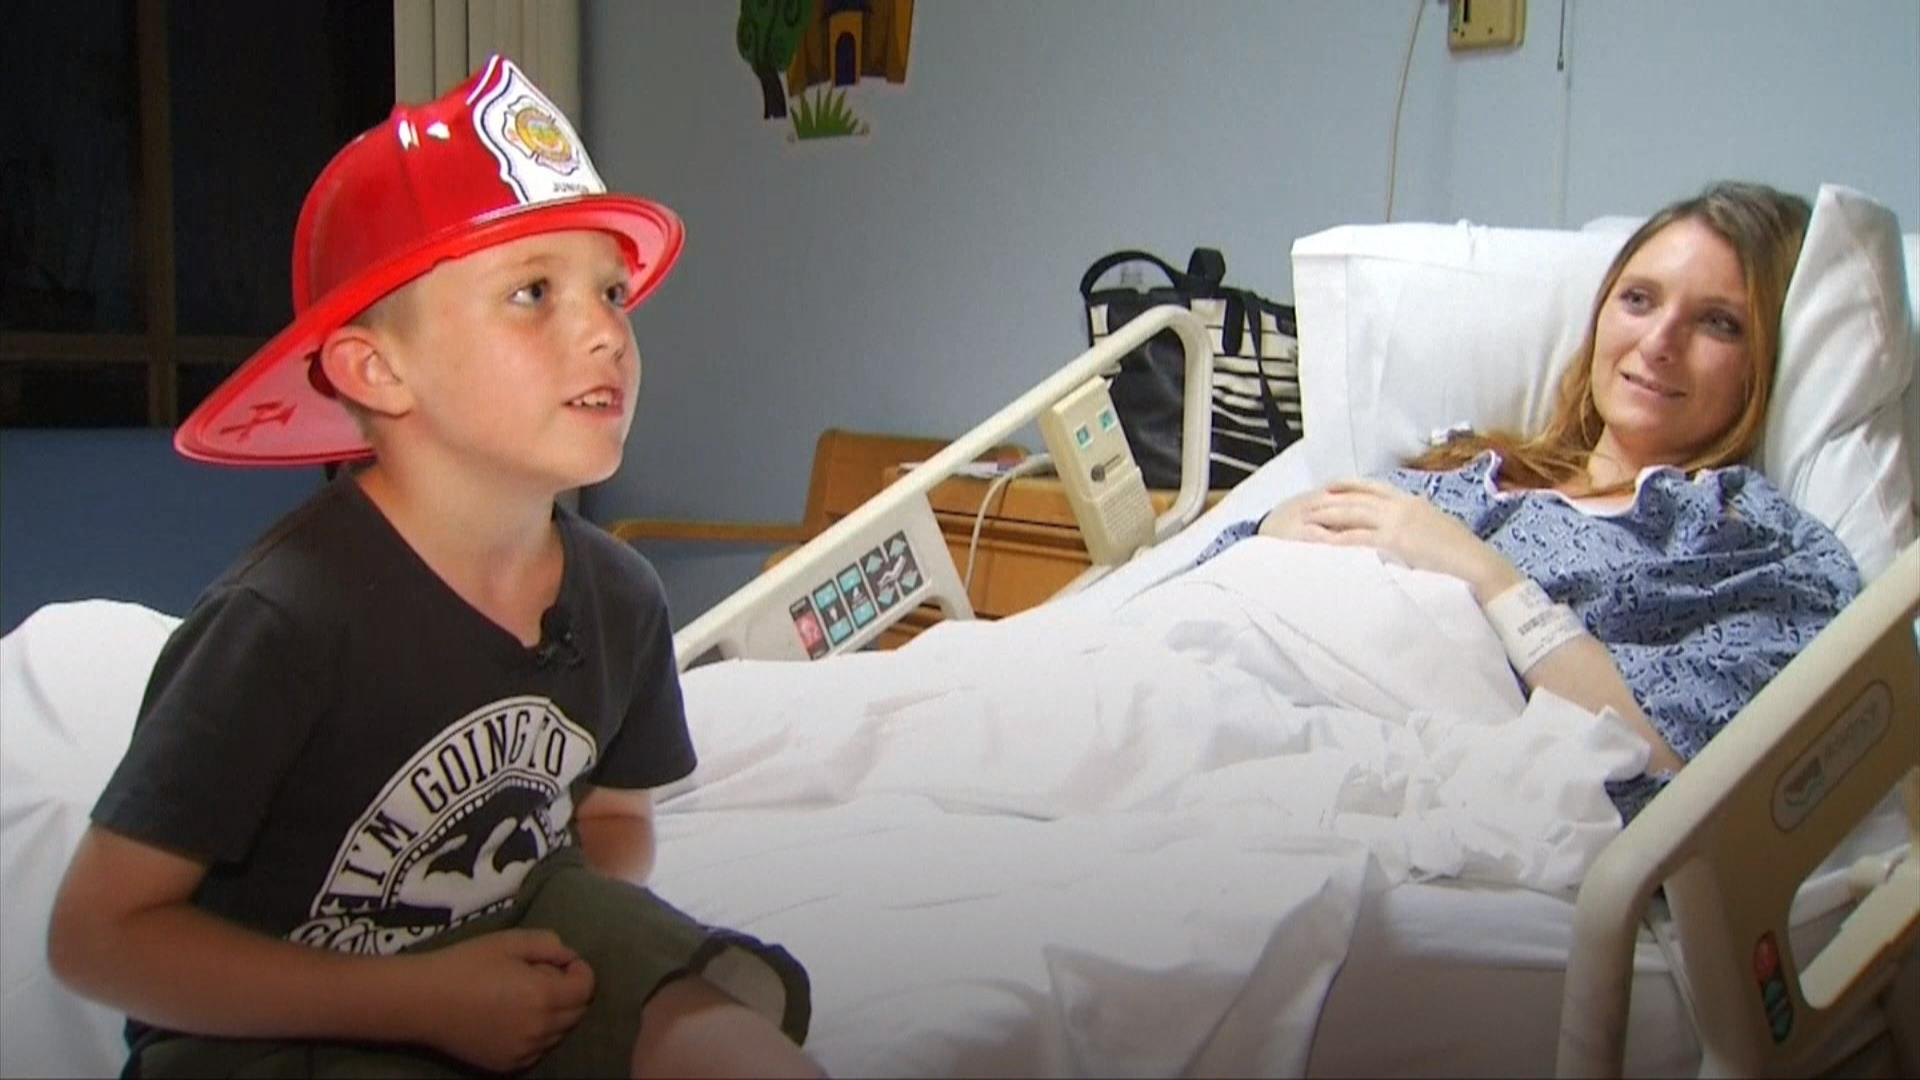 6-year-old boy saves pregnant mom after fall - TODAY.com